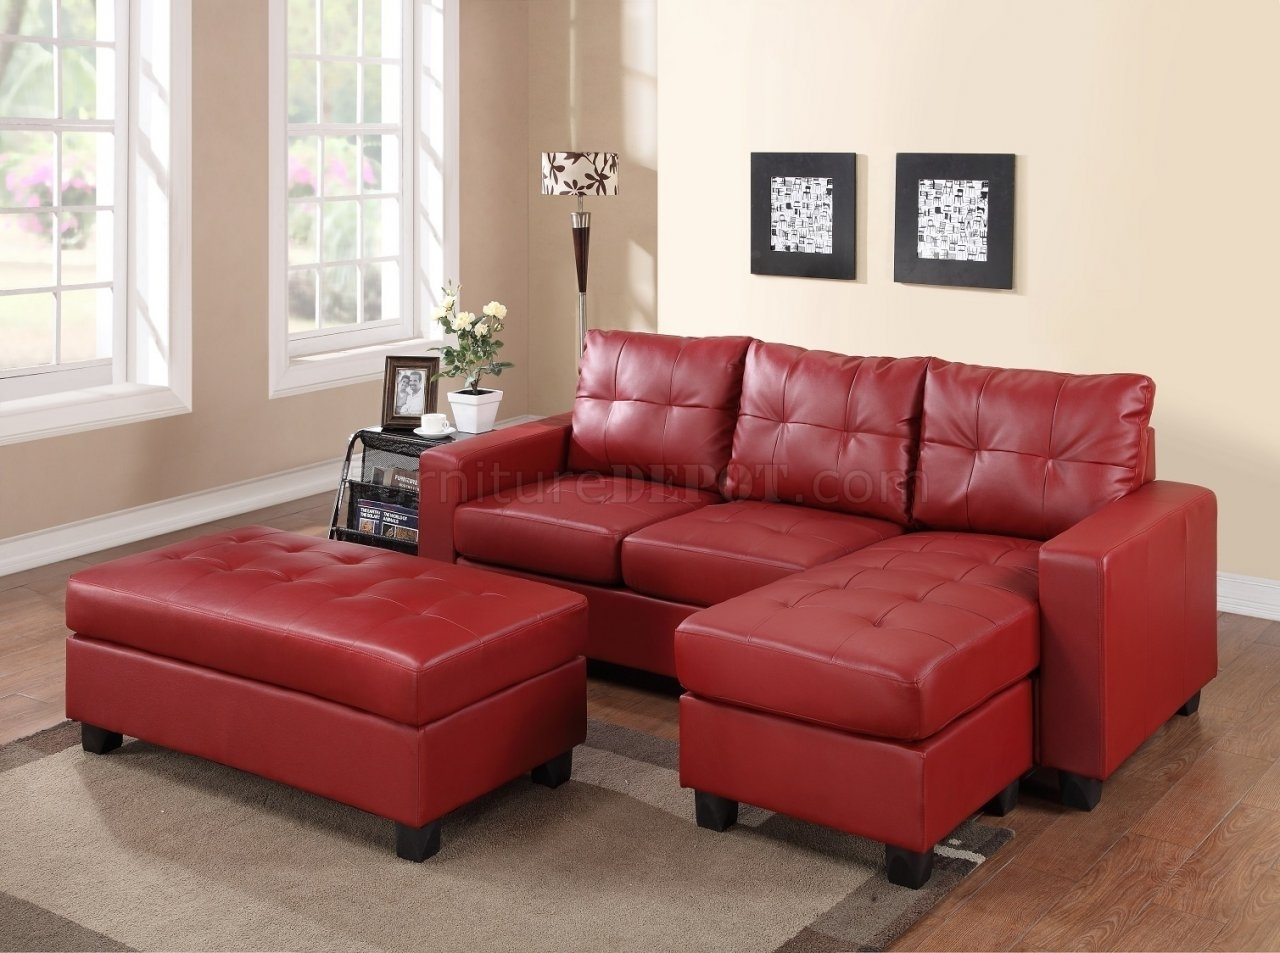 2511 Sectional Sofa Set In Red Bonded Leather Match Pu inside Red Leather Sectional Sofas With Ottoman (Image 1 of 15)